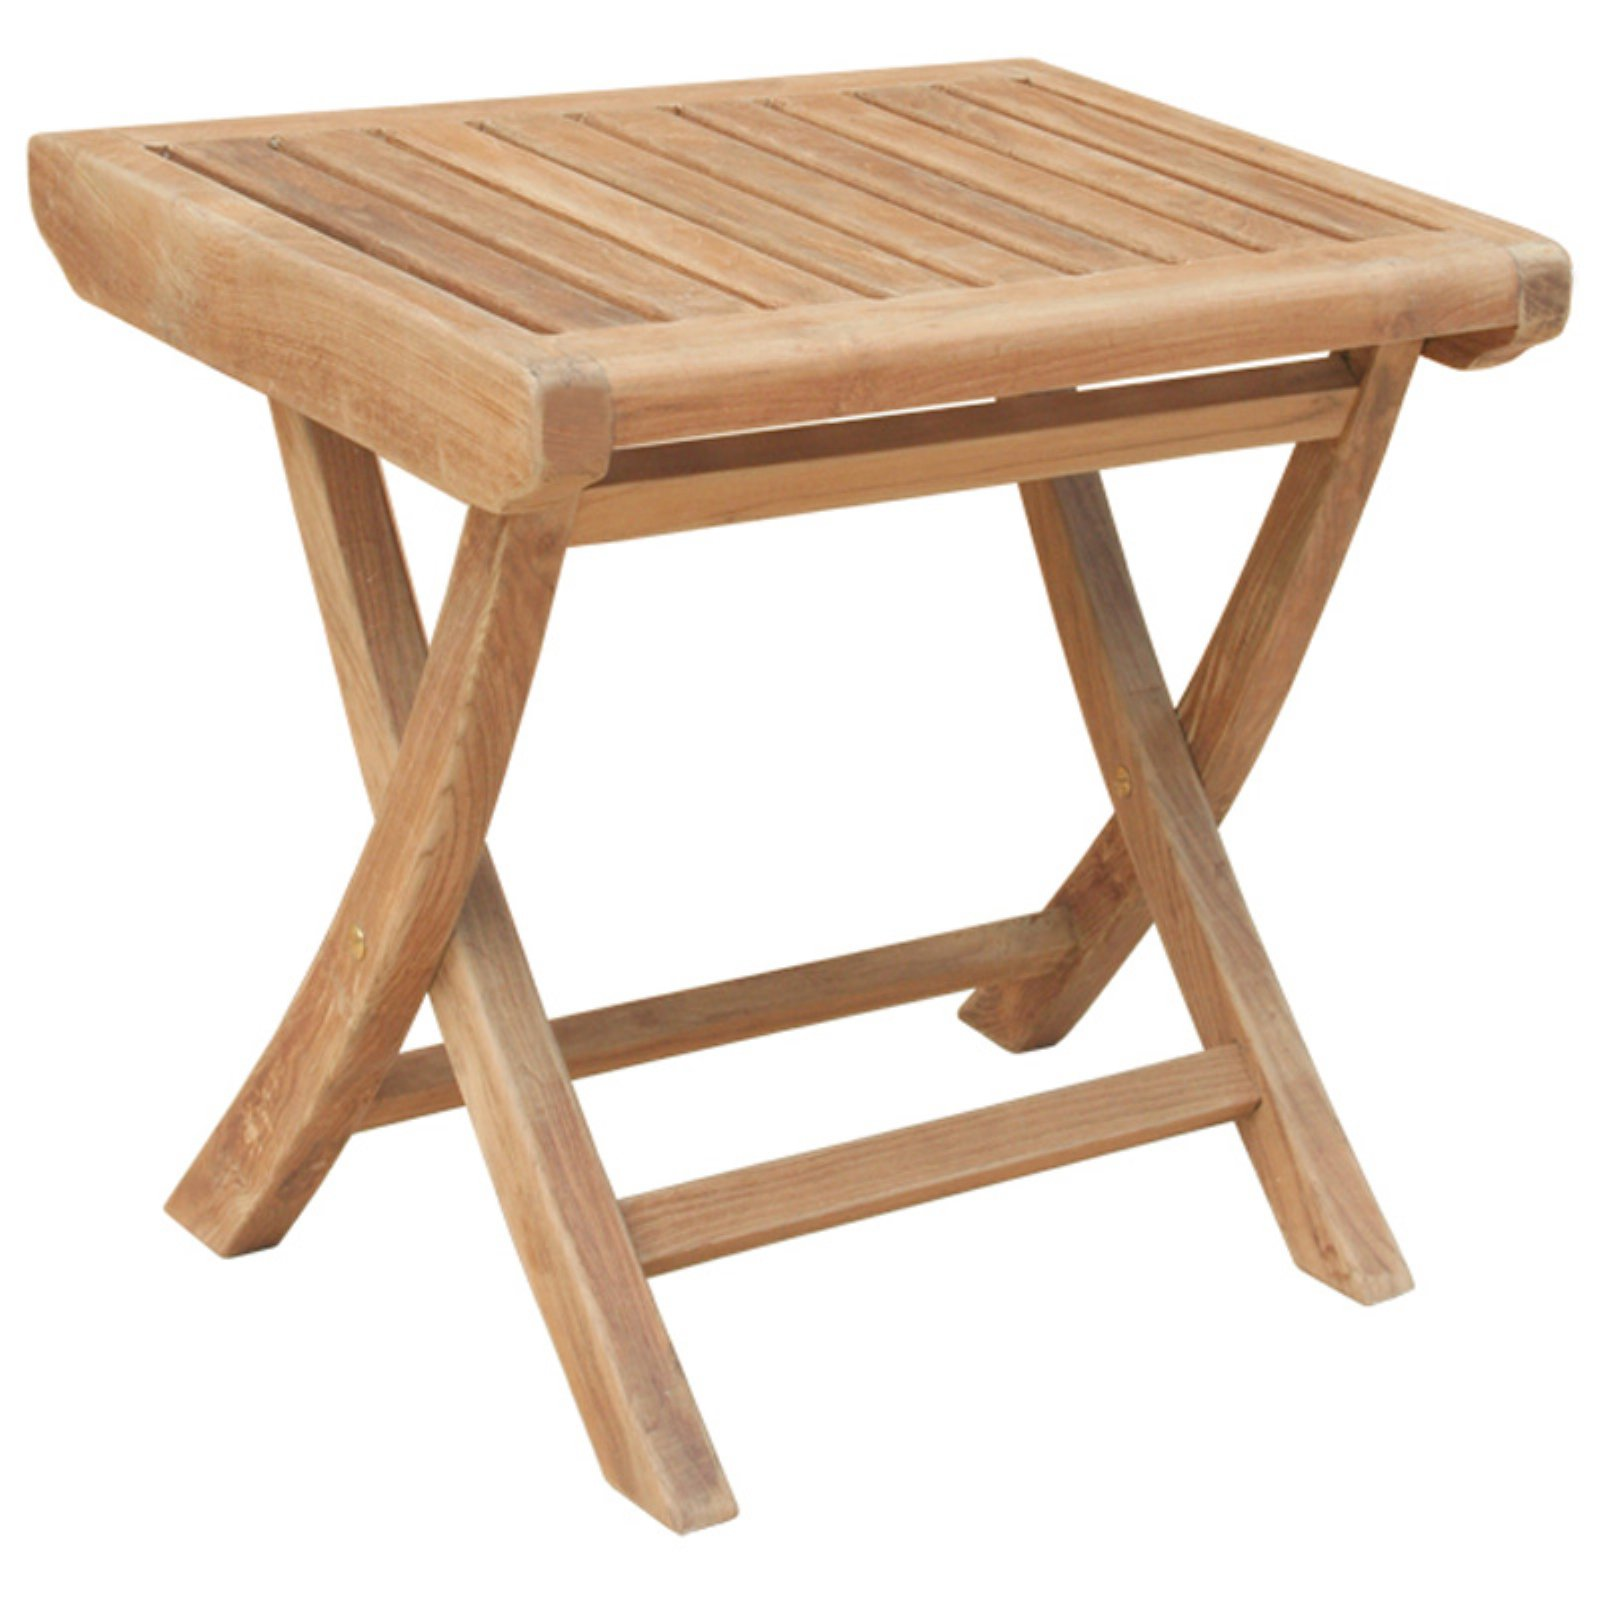 Chic Teak Miami Teak Outdoor Footstool